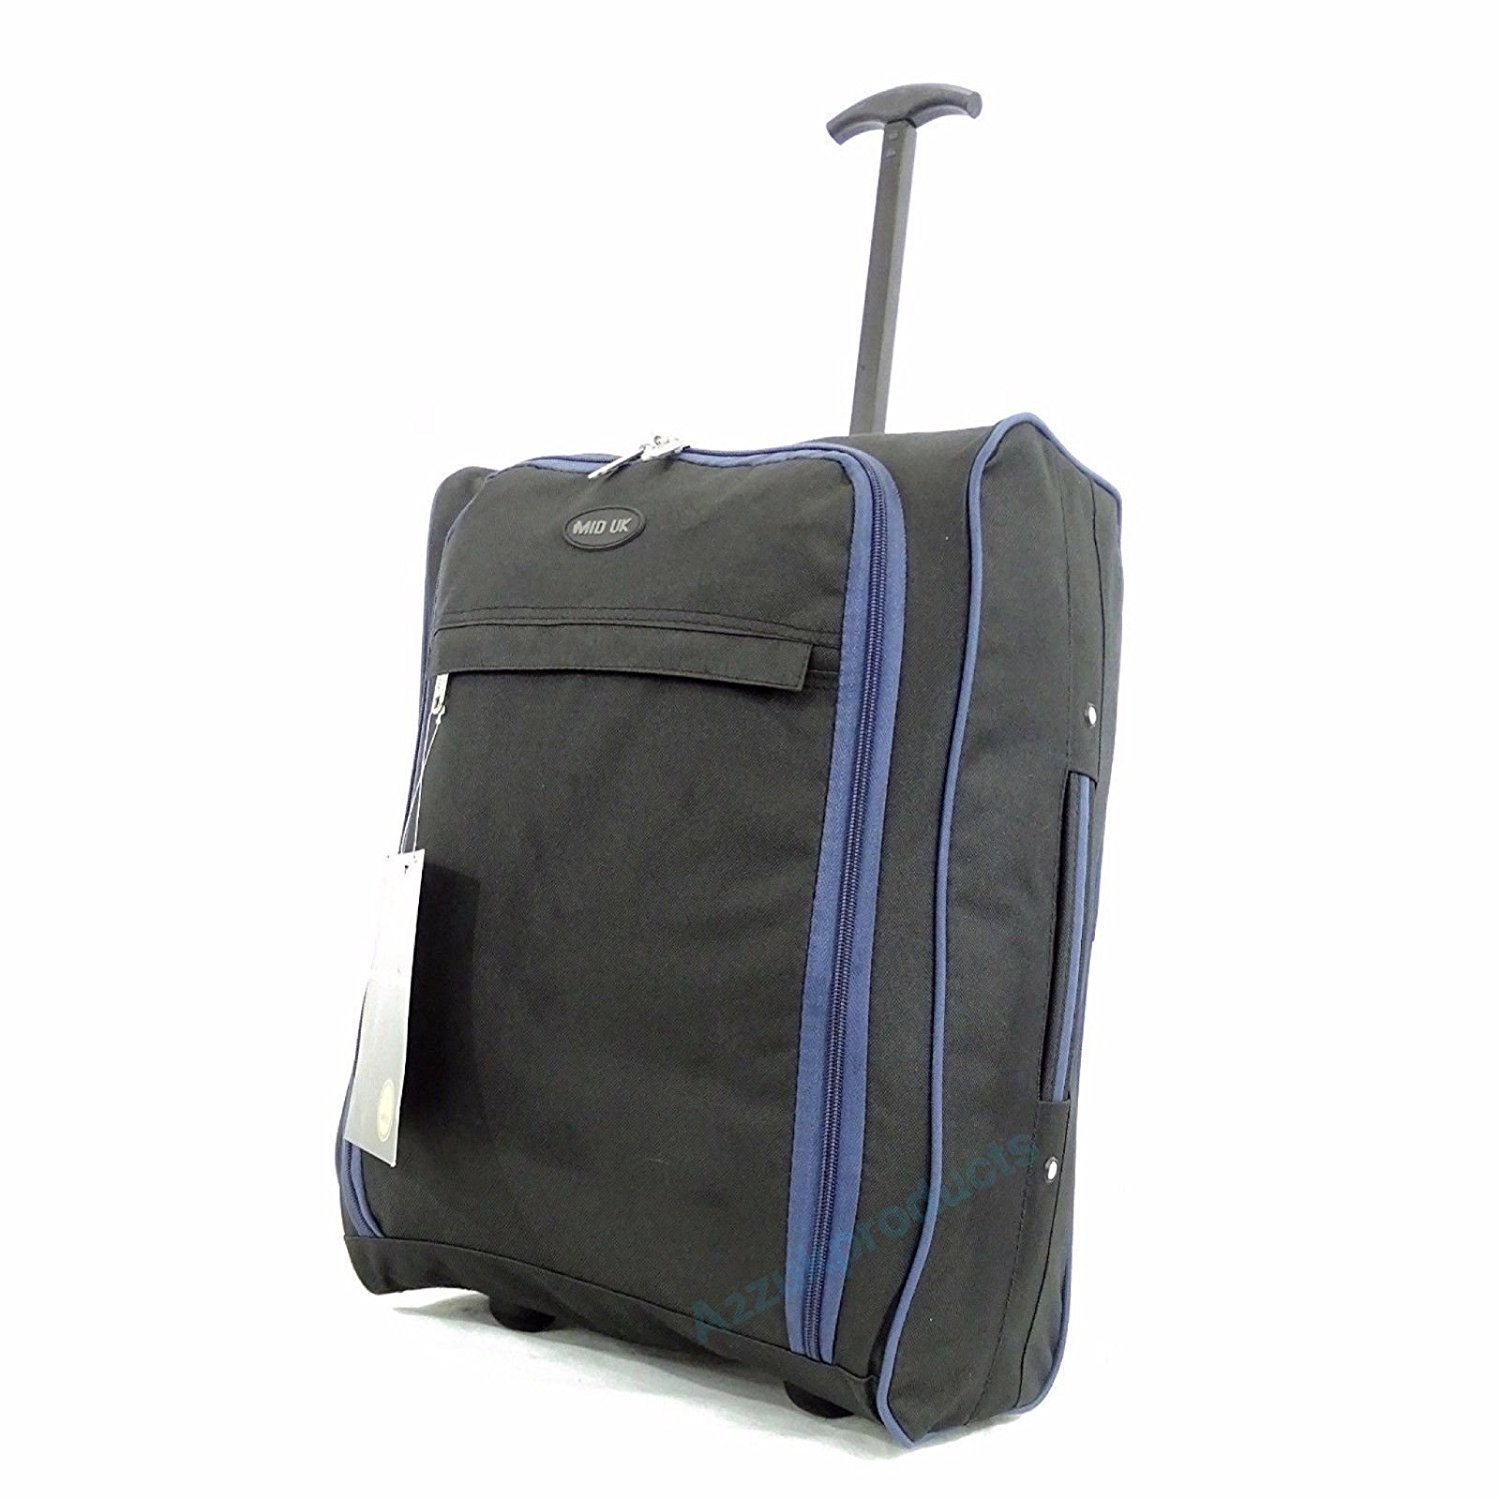 Lightweight Cabin Luggage Cheap Cabin Luggage 50x40x20 Find Cabin Luggage 50x40x20 Deals On